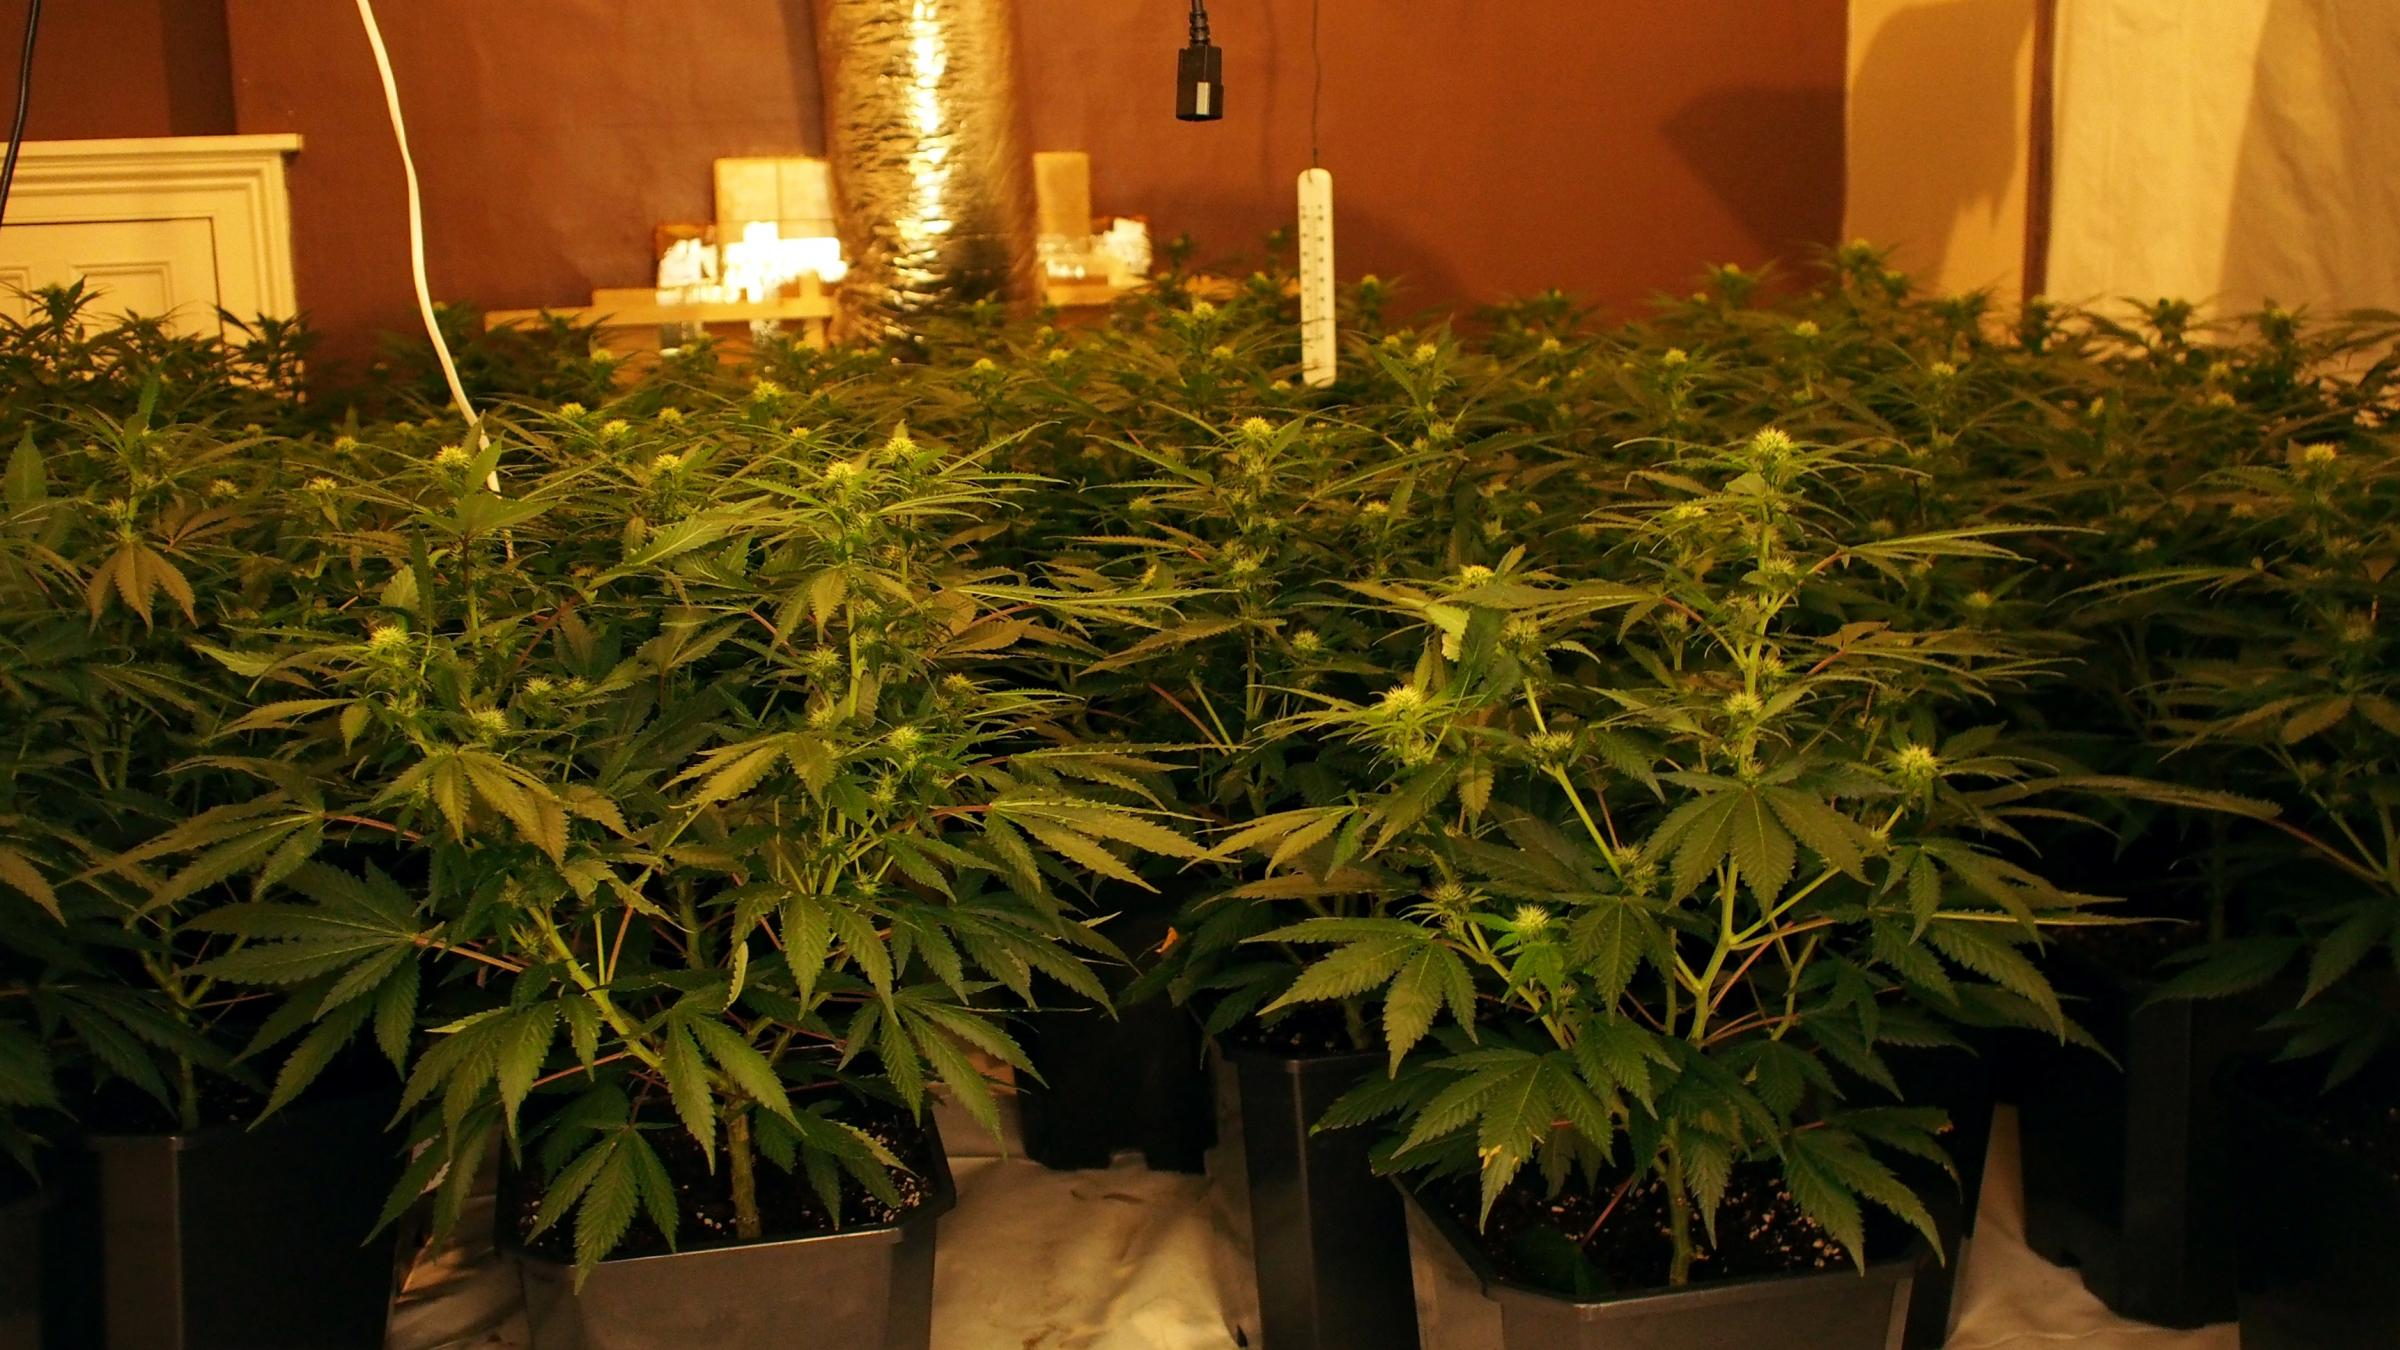 Man arrested after Pembroke Dock cannabis factories found